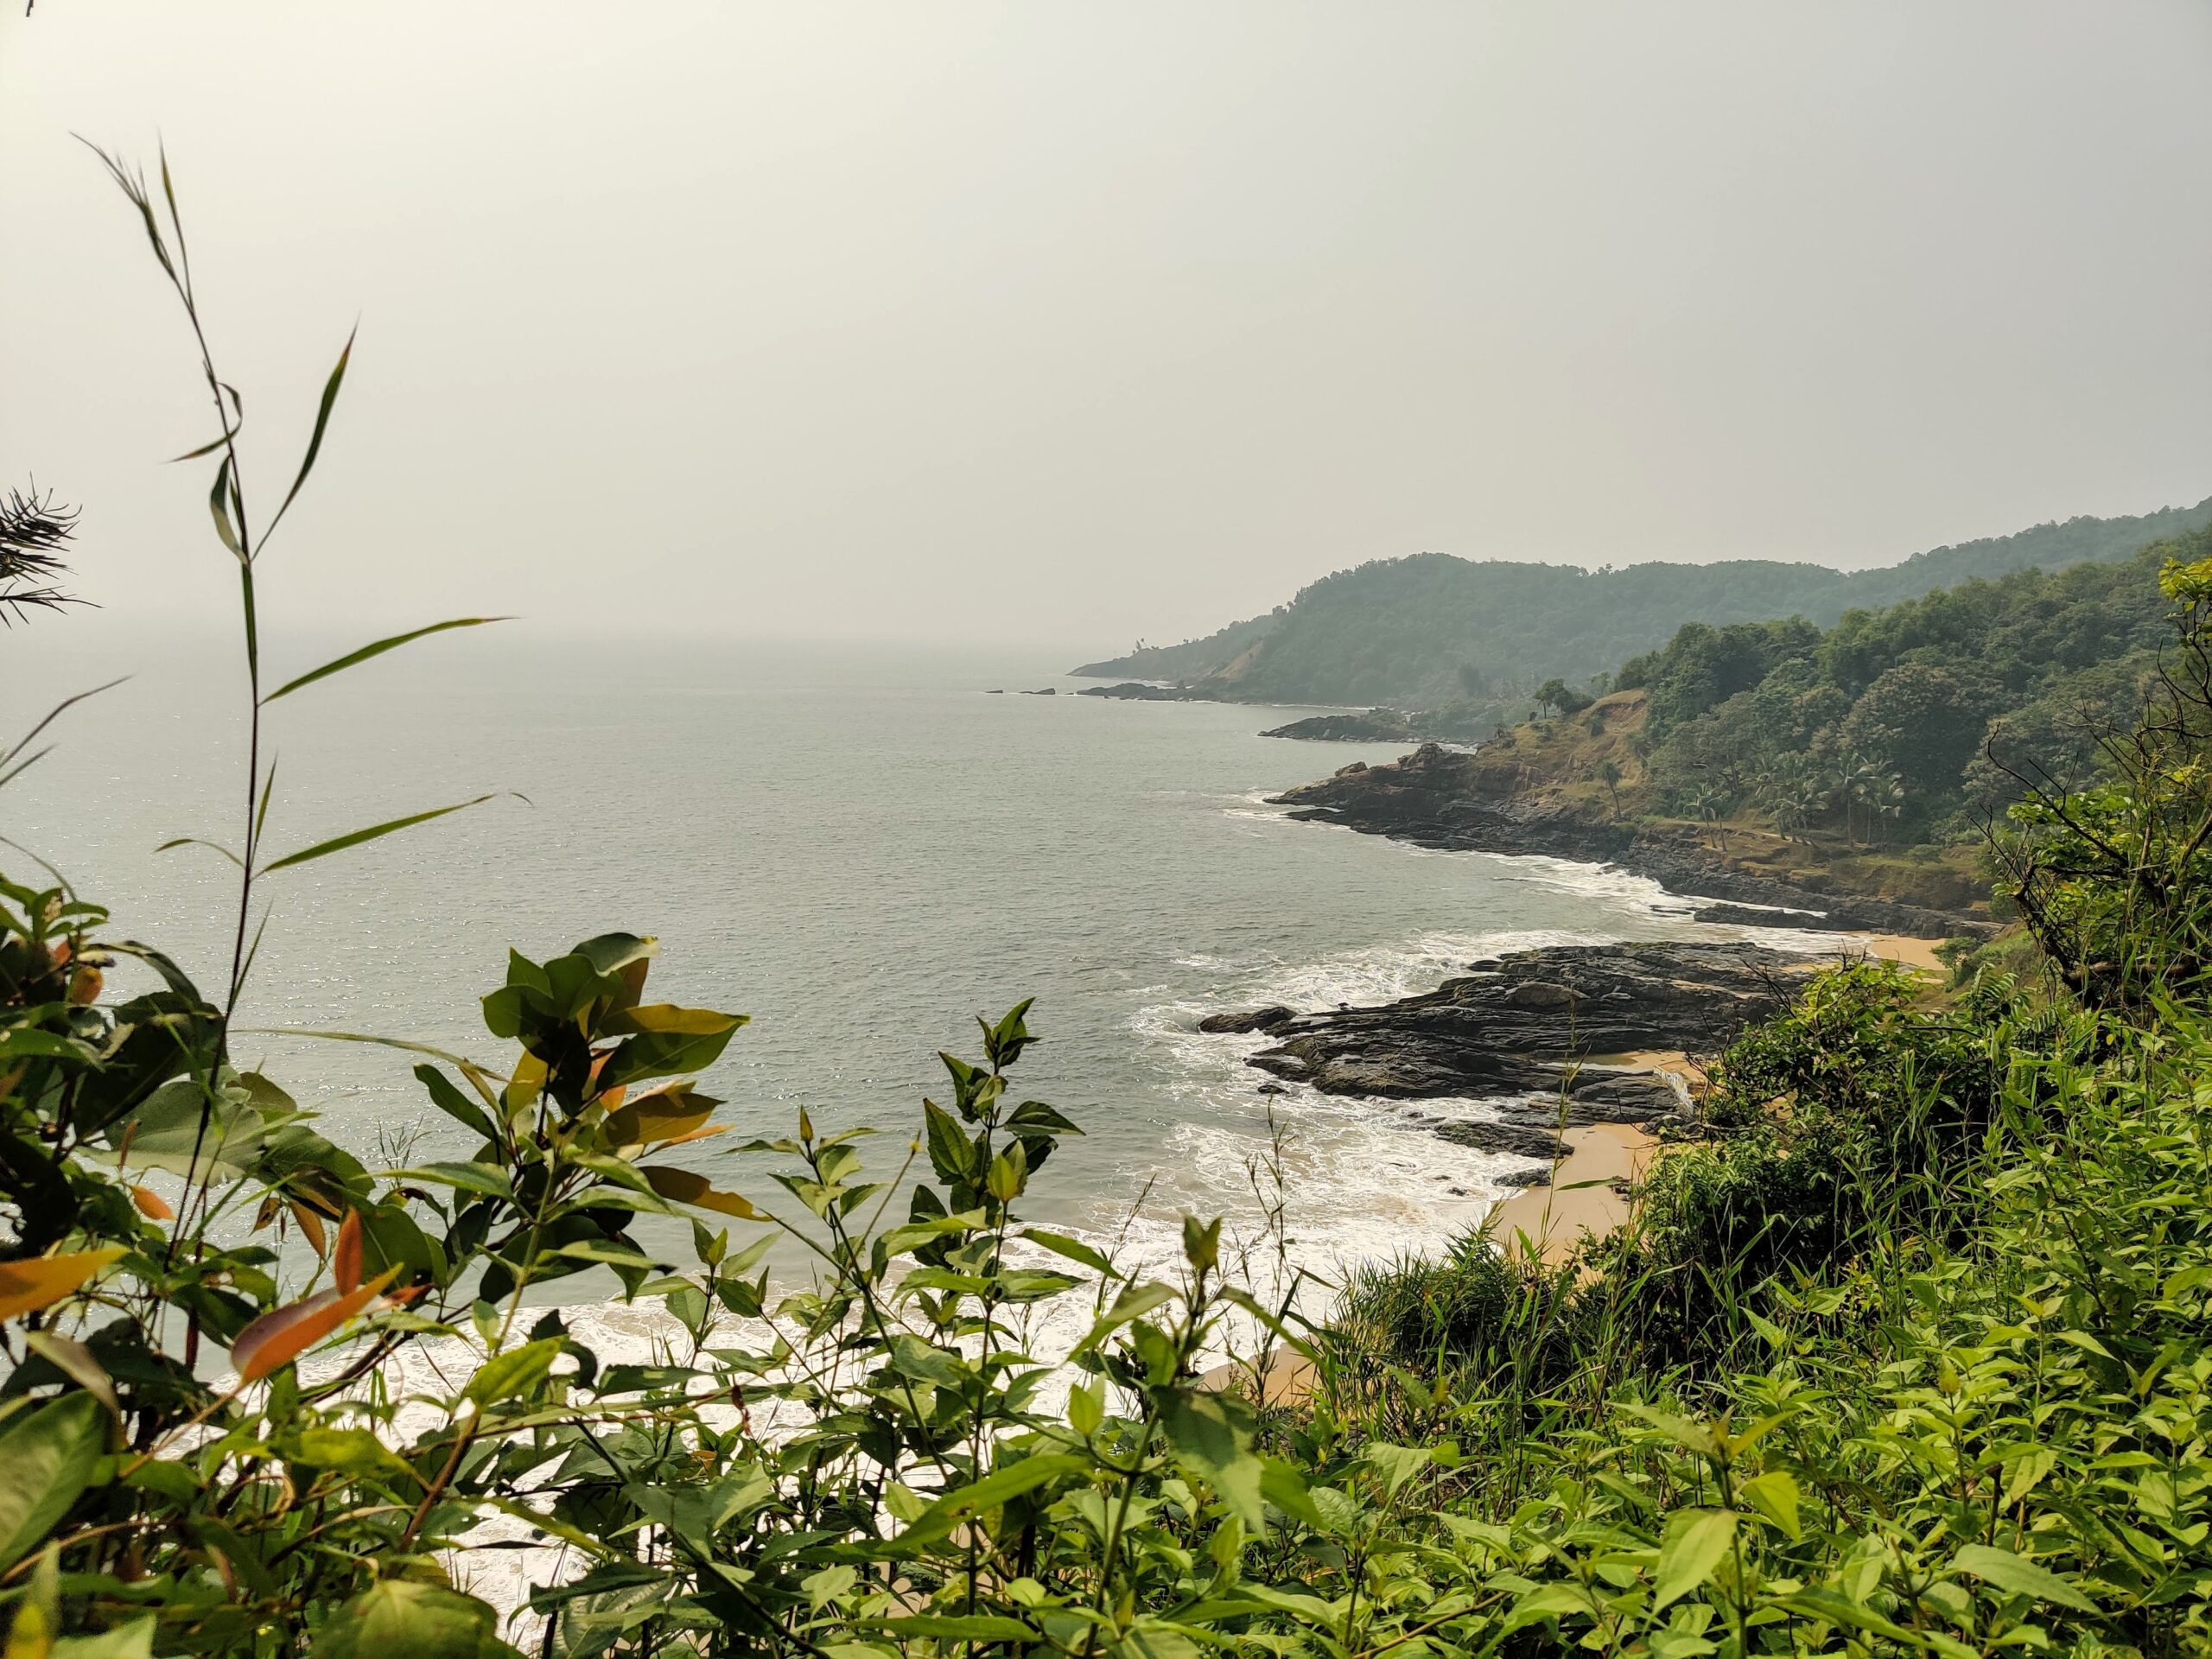 Gokarna; A Potpourri of Beaches, Temples, Caves, Forests and Fort